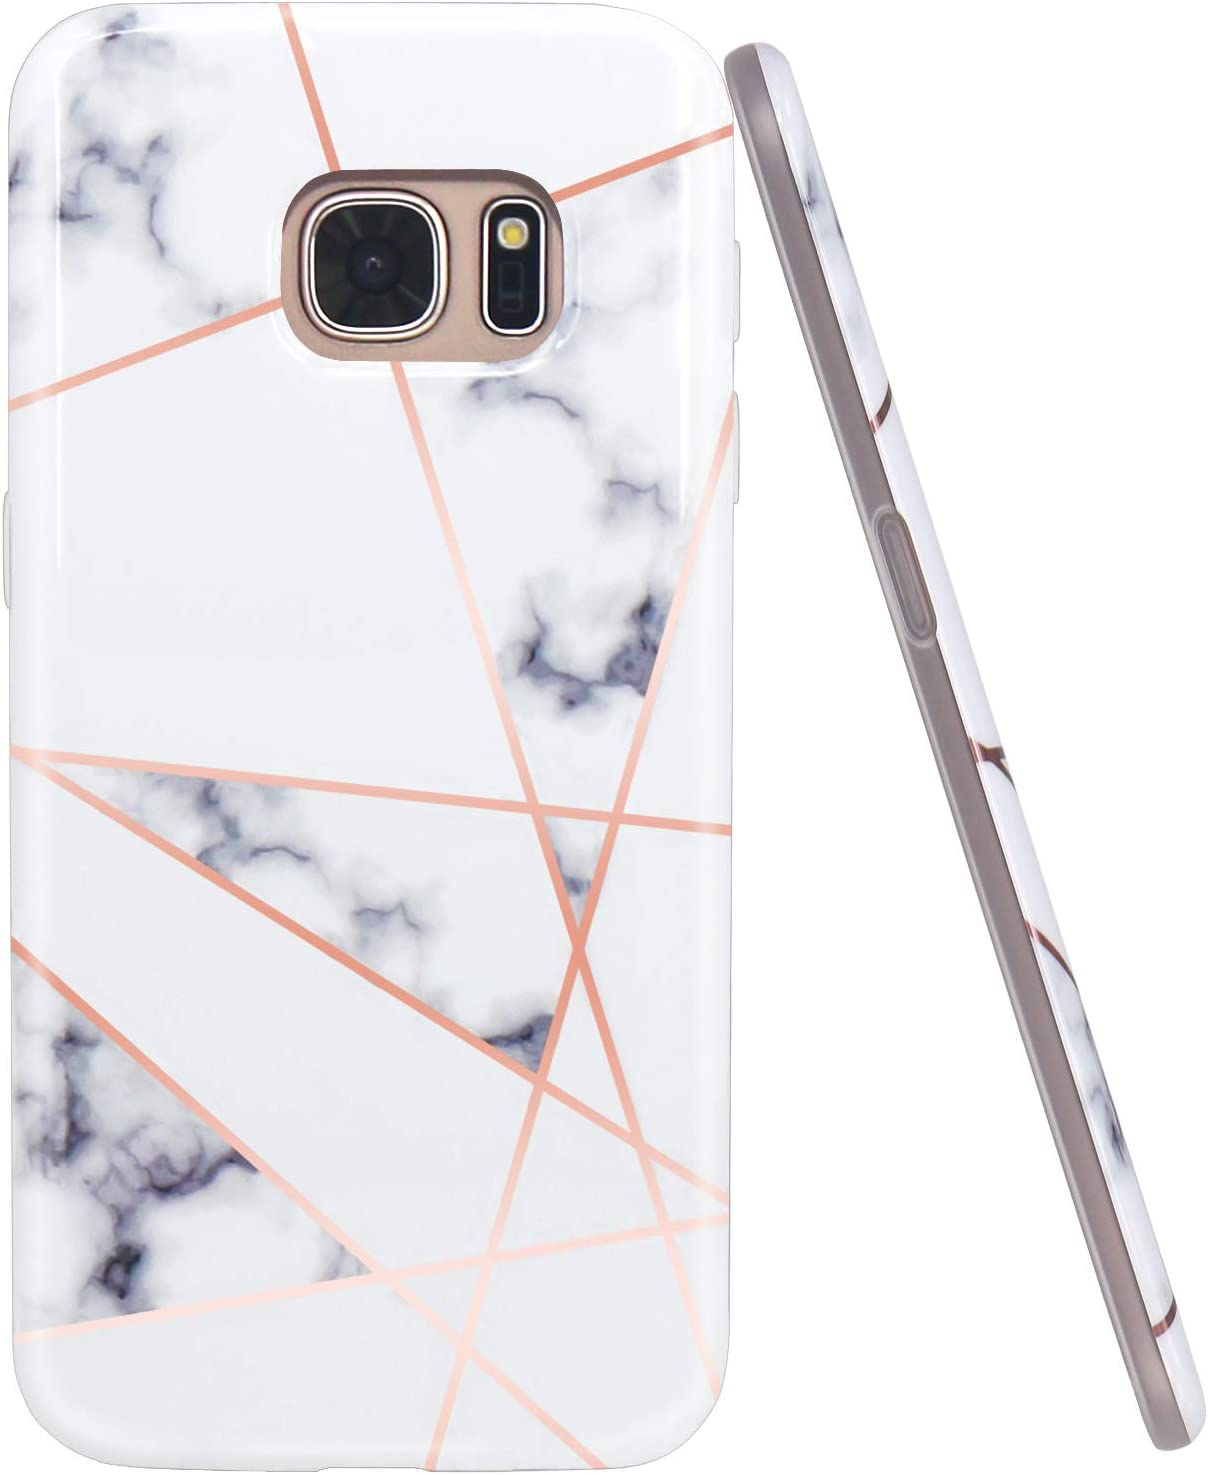 JAHOLAN Galaxy S7 Case Shiny Rose Gold Geometric White Marble Design Slim Flexible Bumper Glossy TPU Soft Rubber Silicone Cover Phone Case for Samsung Galaxy S7